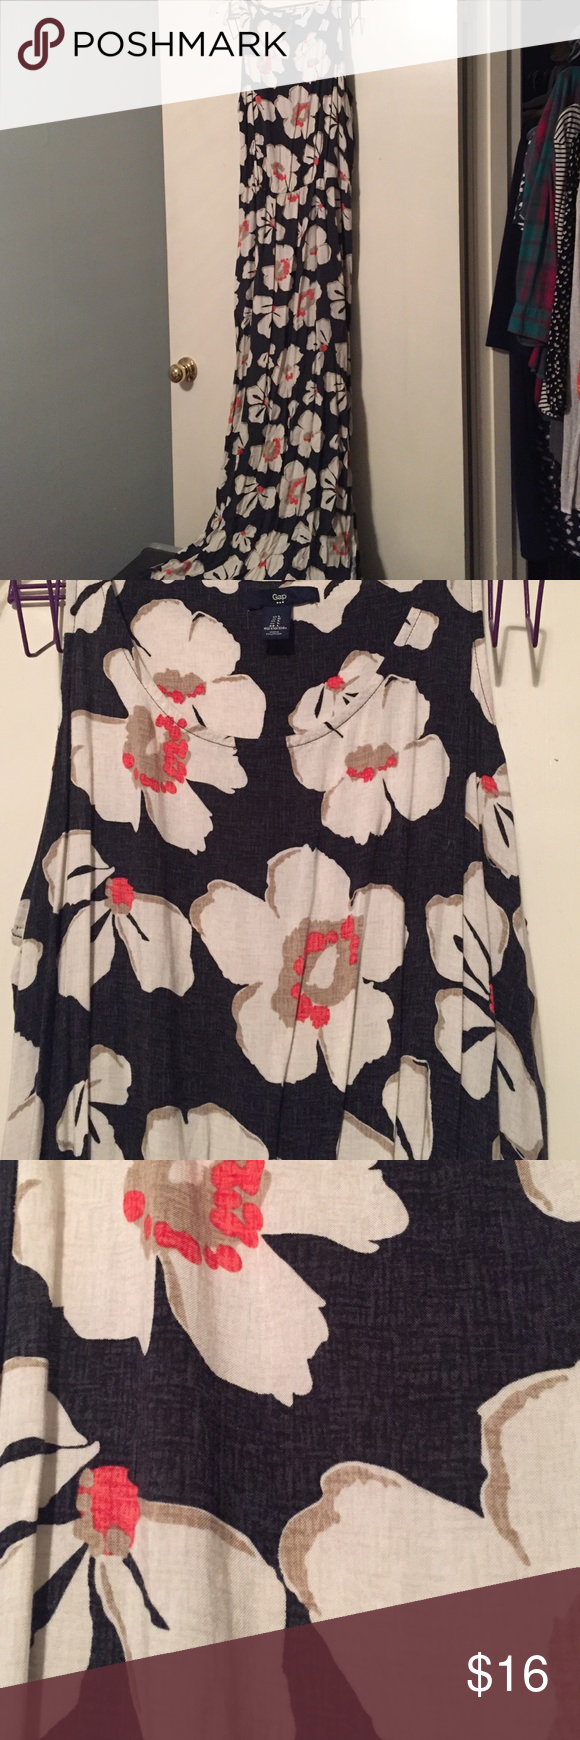 Gap floral maxi dress Black and dark gray stitch pattern with red and tan flowers. Small slits at the bottom of the dress on both sides. Elastic at the waist. GAP Dresses Maxi